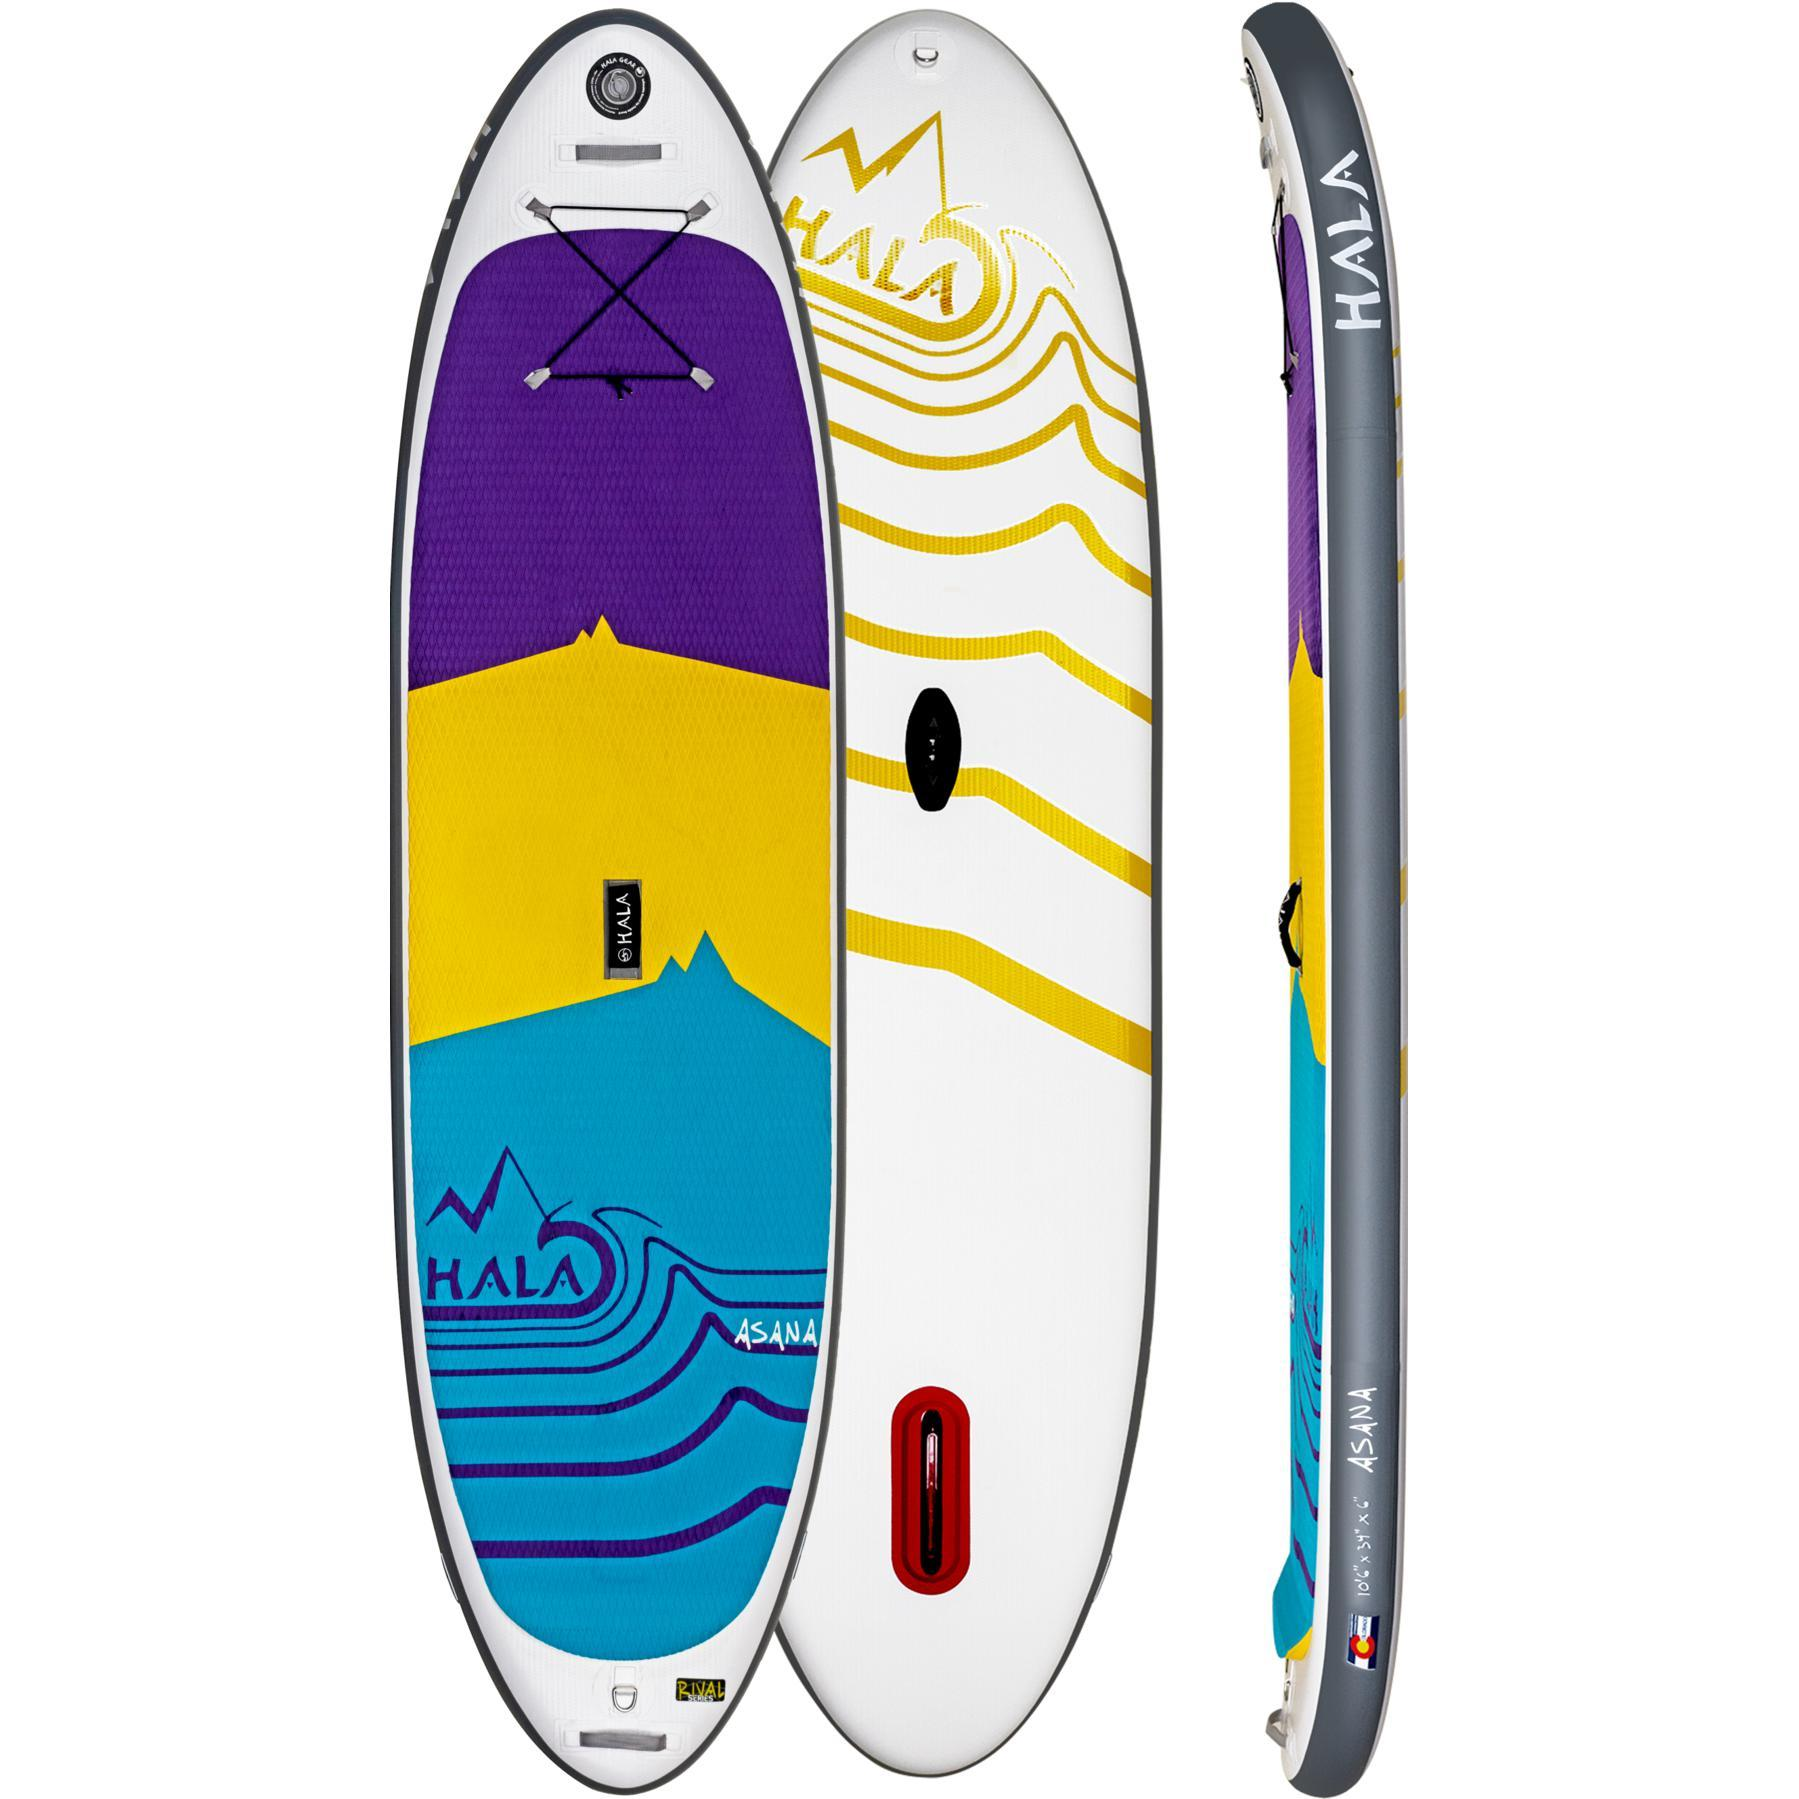 2019 HALA Asana Inflatable Paddle Board-Big Winds